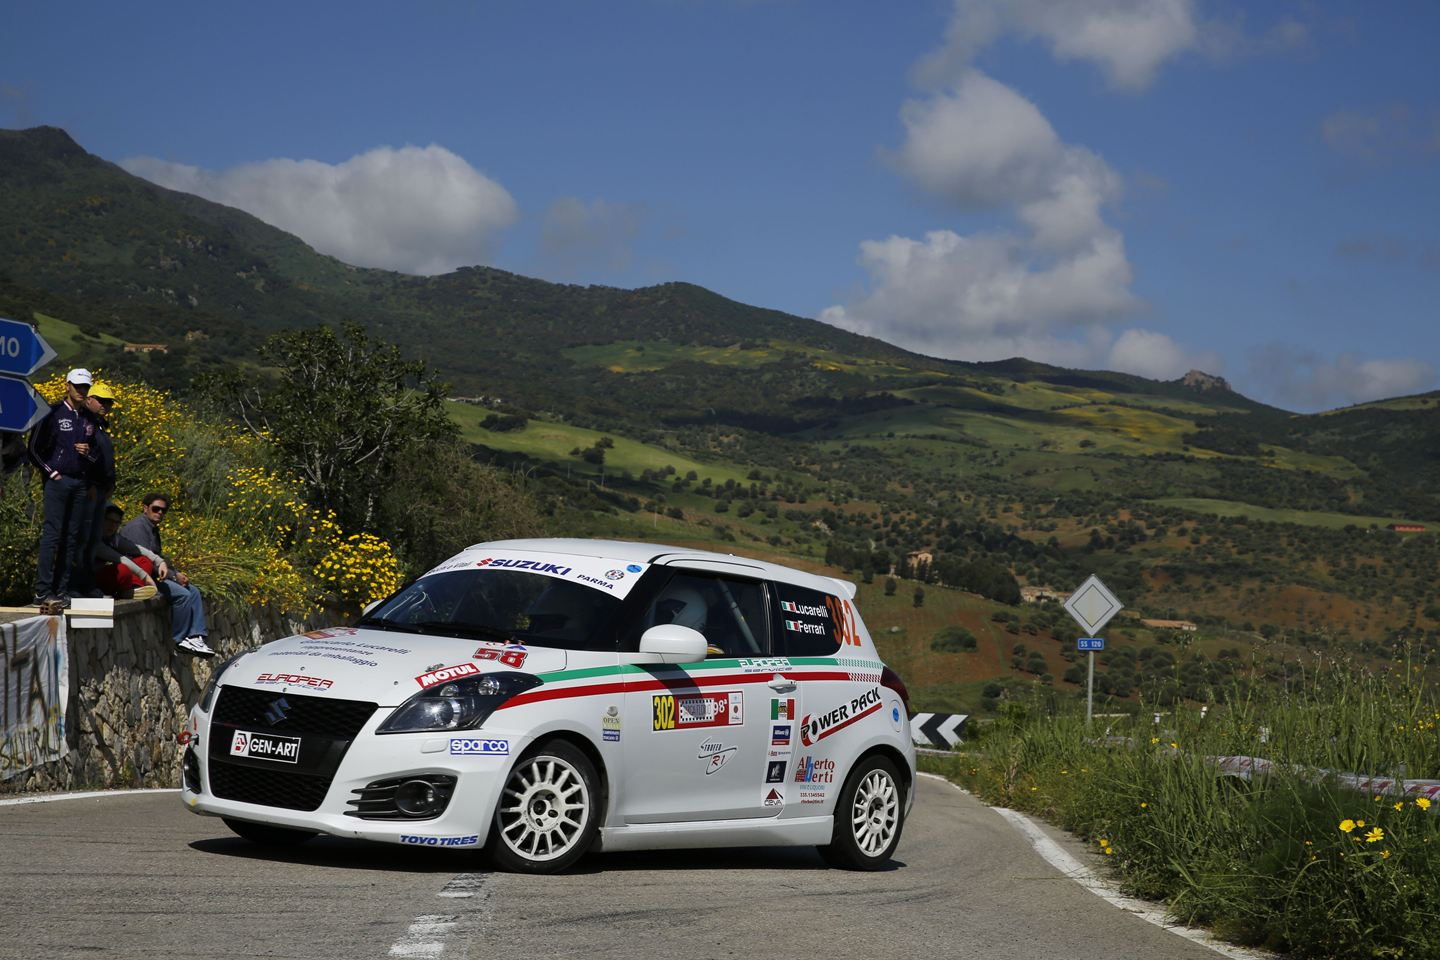 Suzuki Rally su due fronti nel weekend